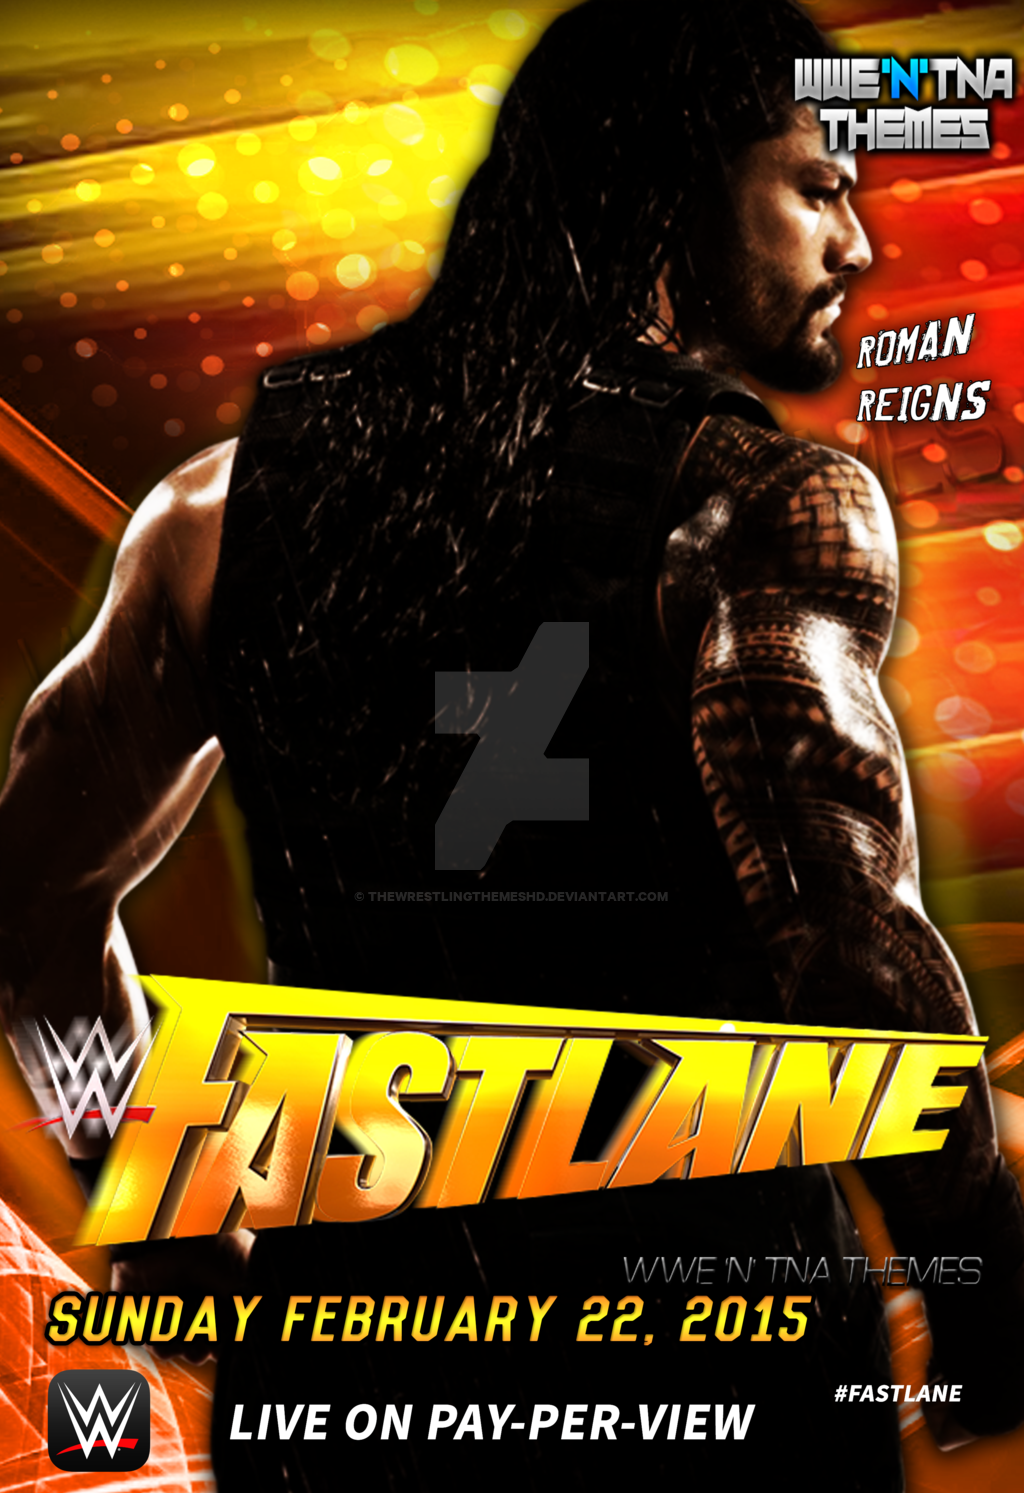 WWE Fast Lane 2nd Custom Poster HD by thewrestlingthemeshd on 1024x1493